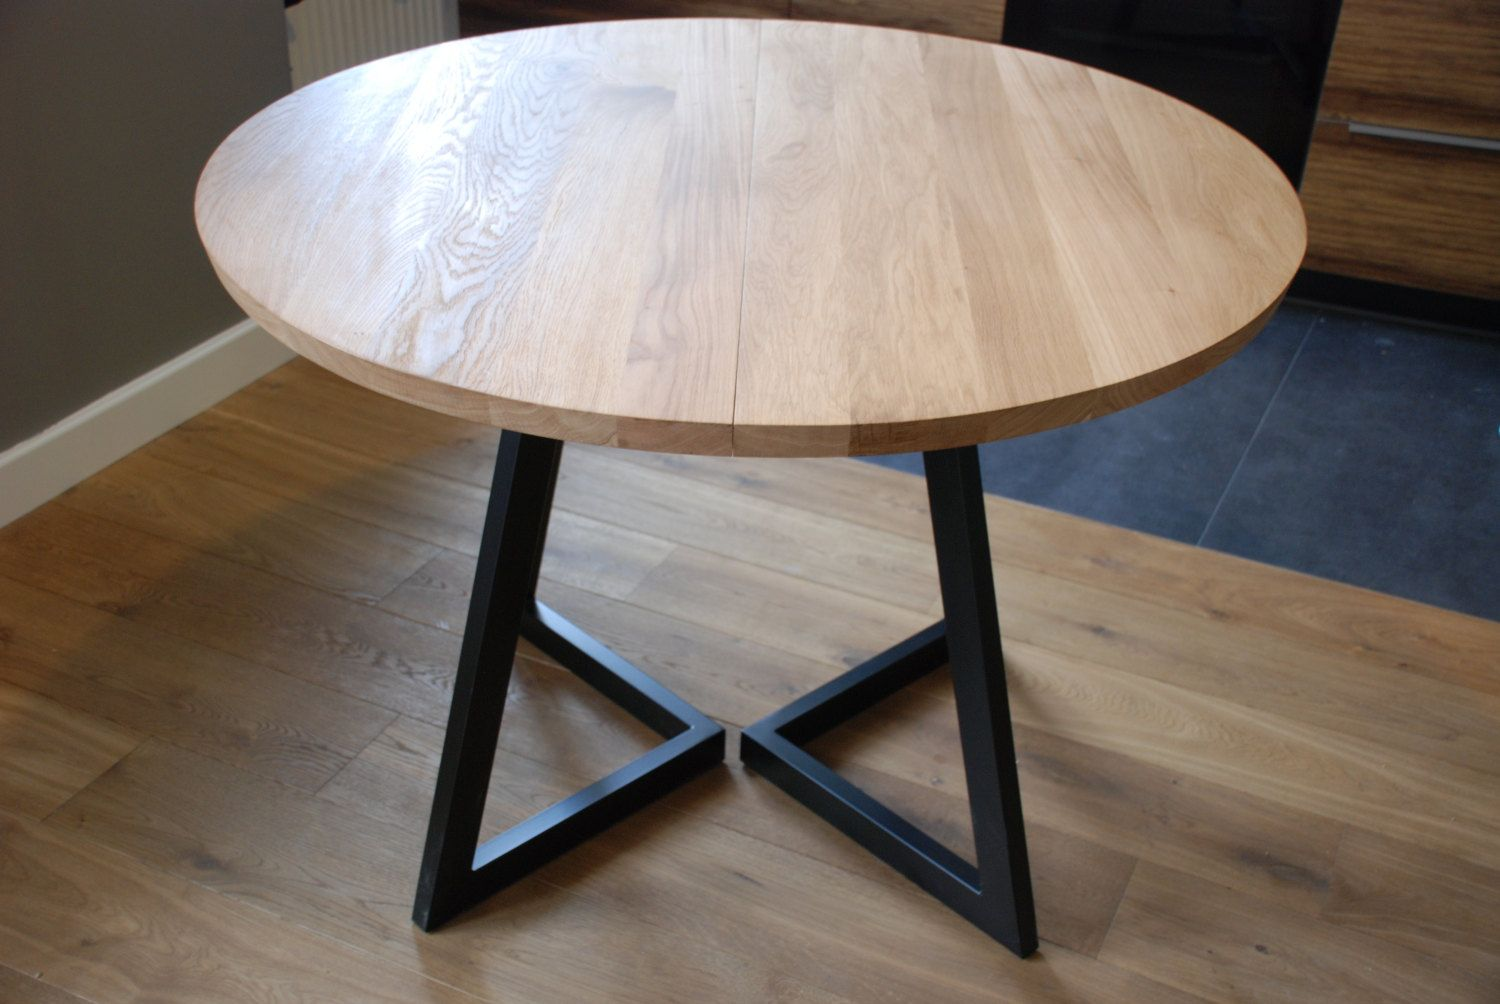 Extendable round table modern design steel and timber | Lar dos ...